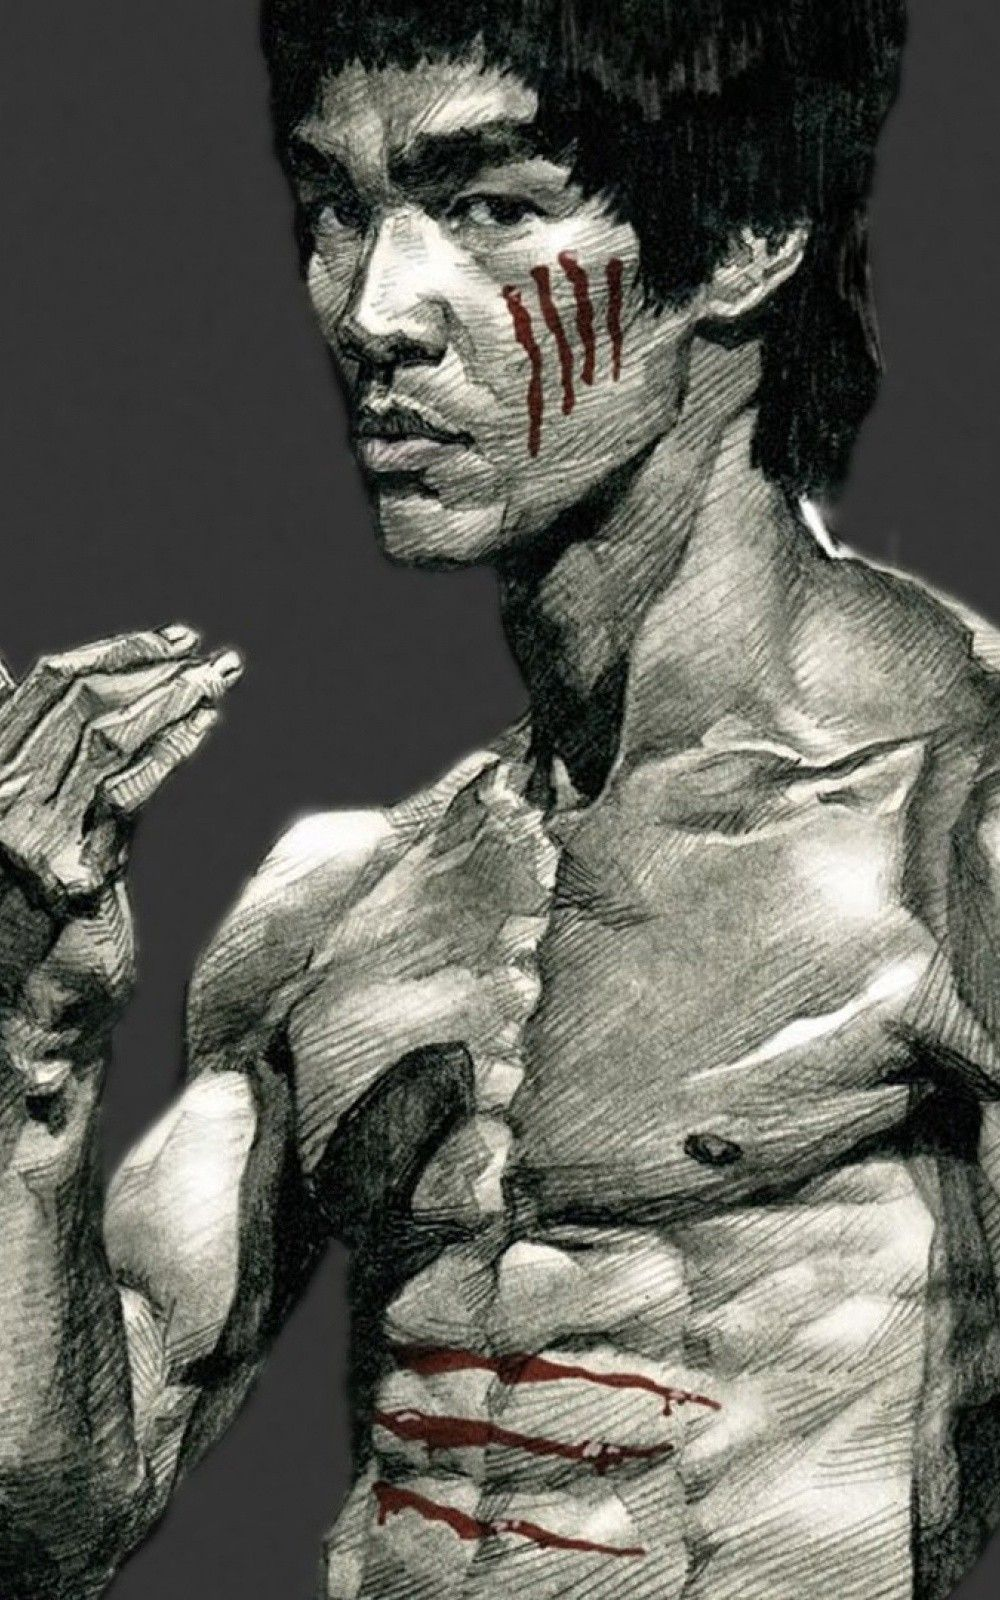 Bruce Lee Drawing Android And Iphone Wallpaper Background And Lockscreen Hd Check More At Https Phonewallp Com Bruce Lee Drawing Android And Iphone Wallpaper